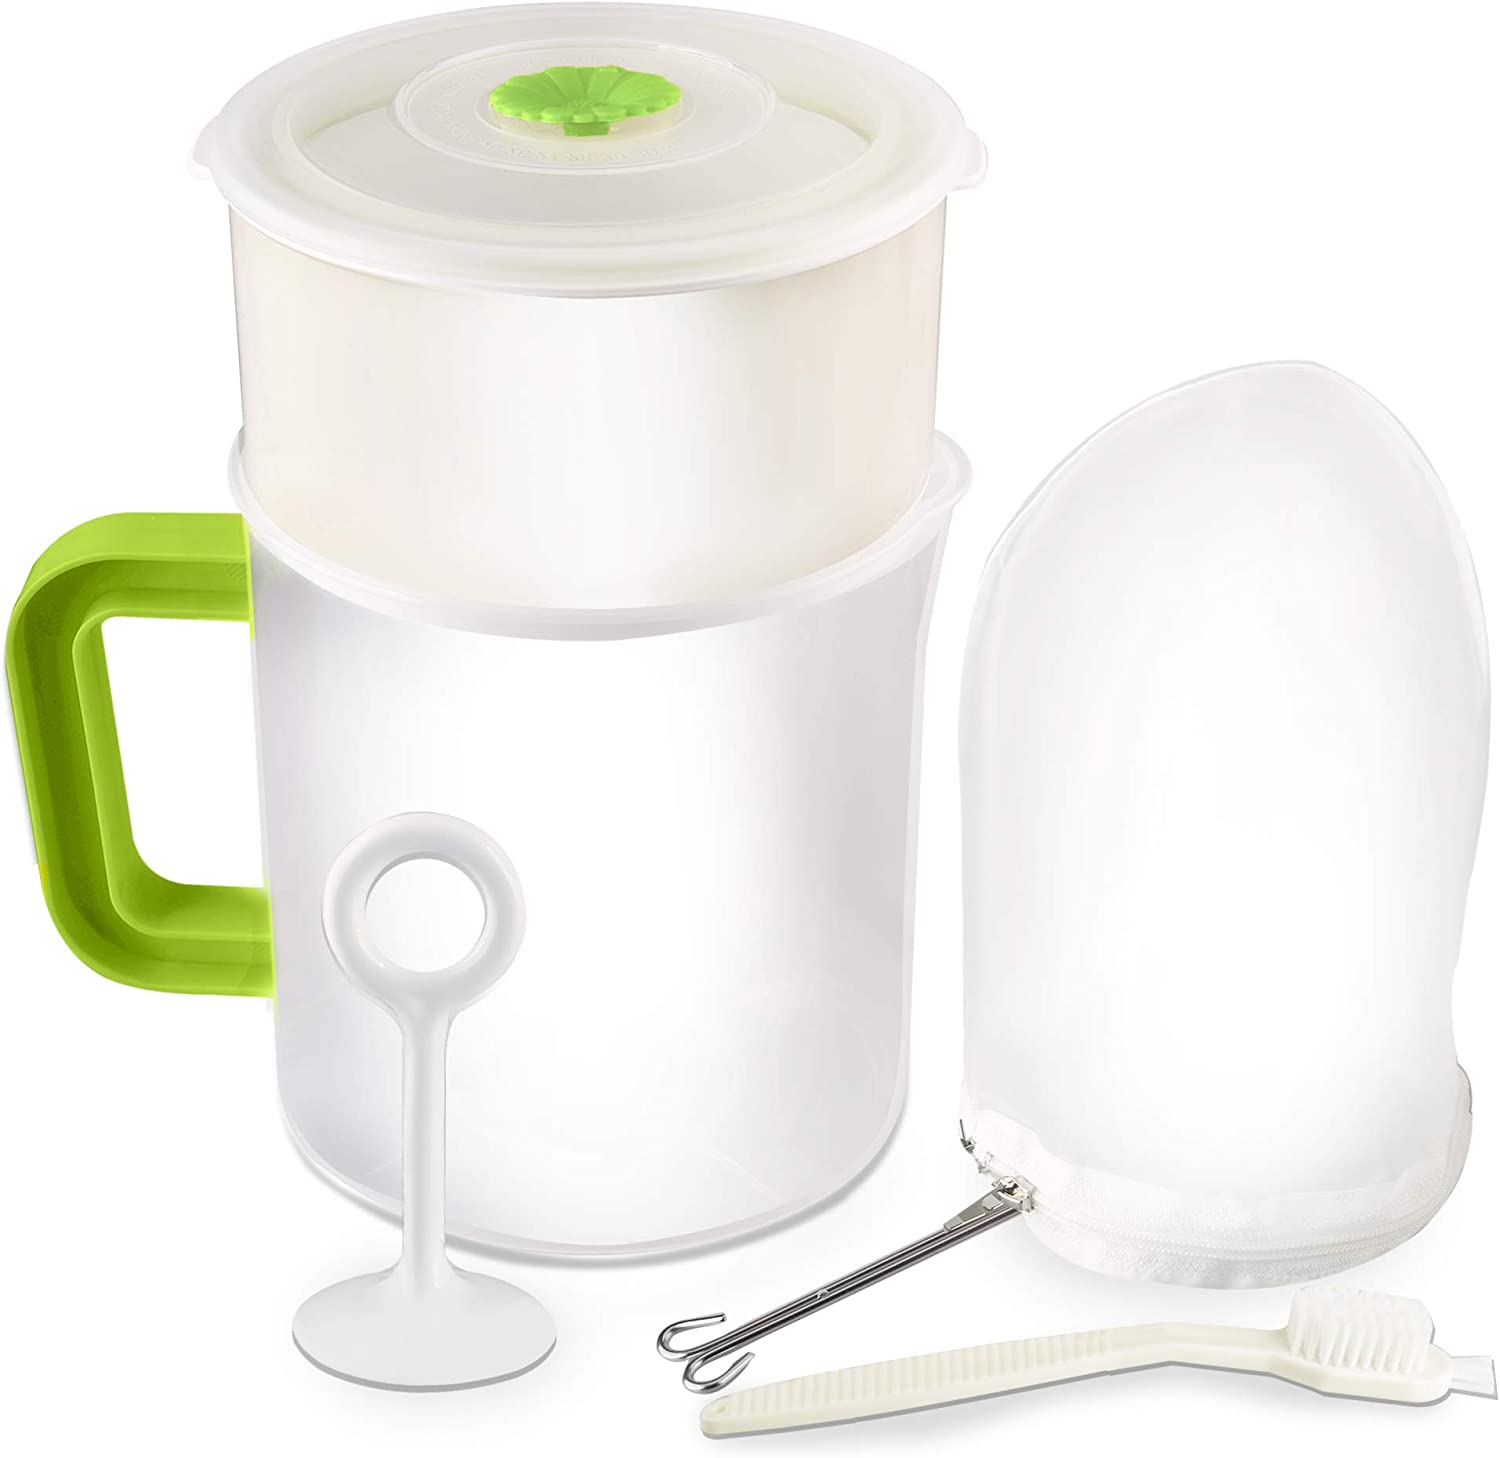 Multiple Usage Food Strainer Greek Yogurt Strainer Maker with 200 Micron Nylon Cheesecloth Bag Food Grade Polycarbonate And Stainless Steel Mesh BPA-Free, Soy Milk Juice Tea Filter 1.5-Quart